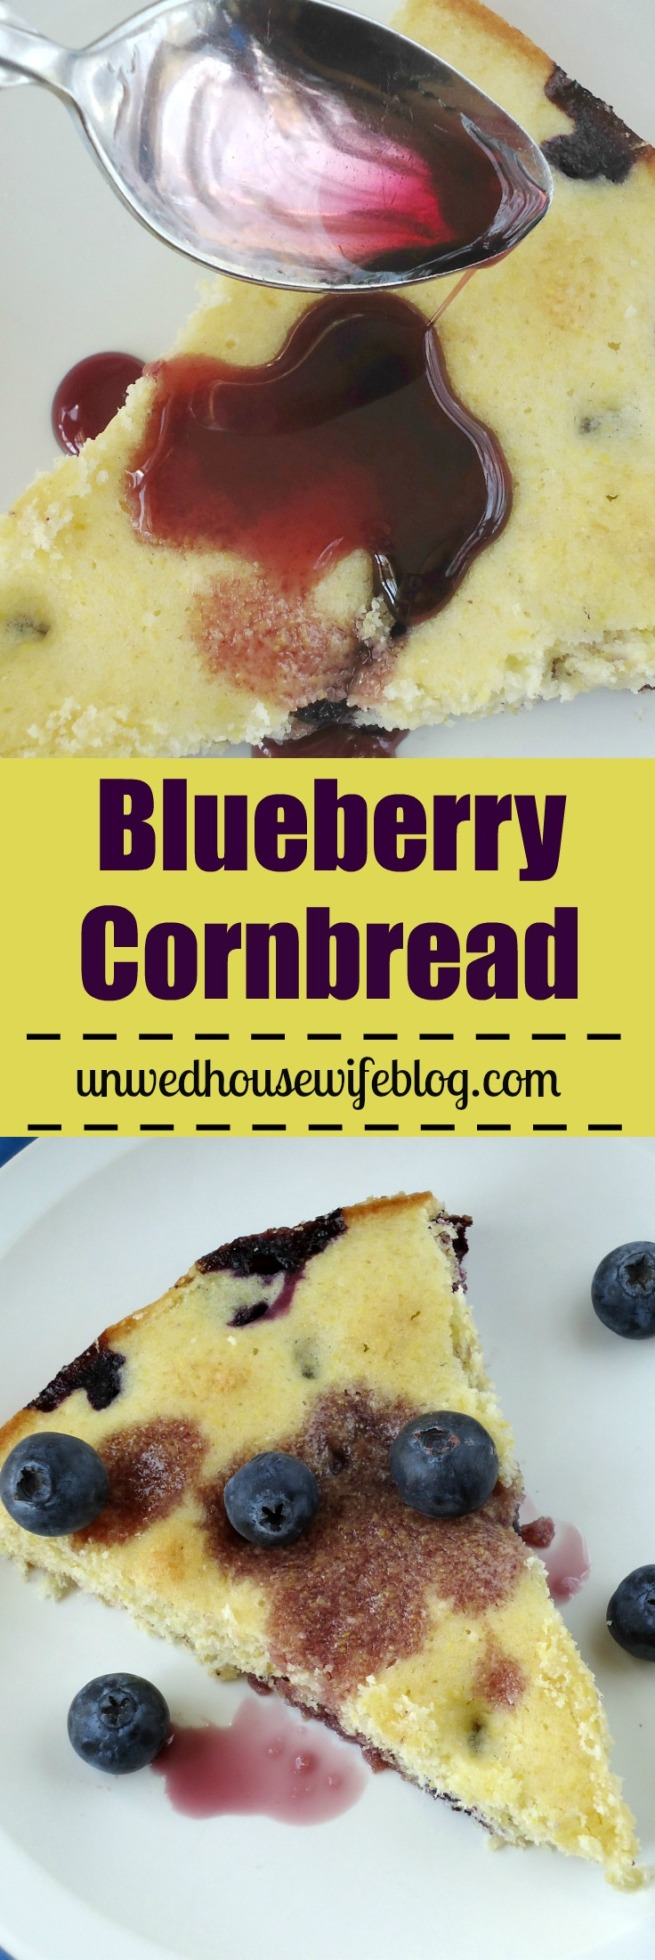 Blueberry Cornbread | Unwed Housewife | Fluffy, sweet cornbread recipe made with fresh blueberries, lemon juice, and lemon zest. This blueberry cornbread is one of a kind and unbelievably good.